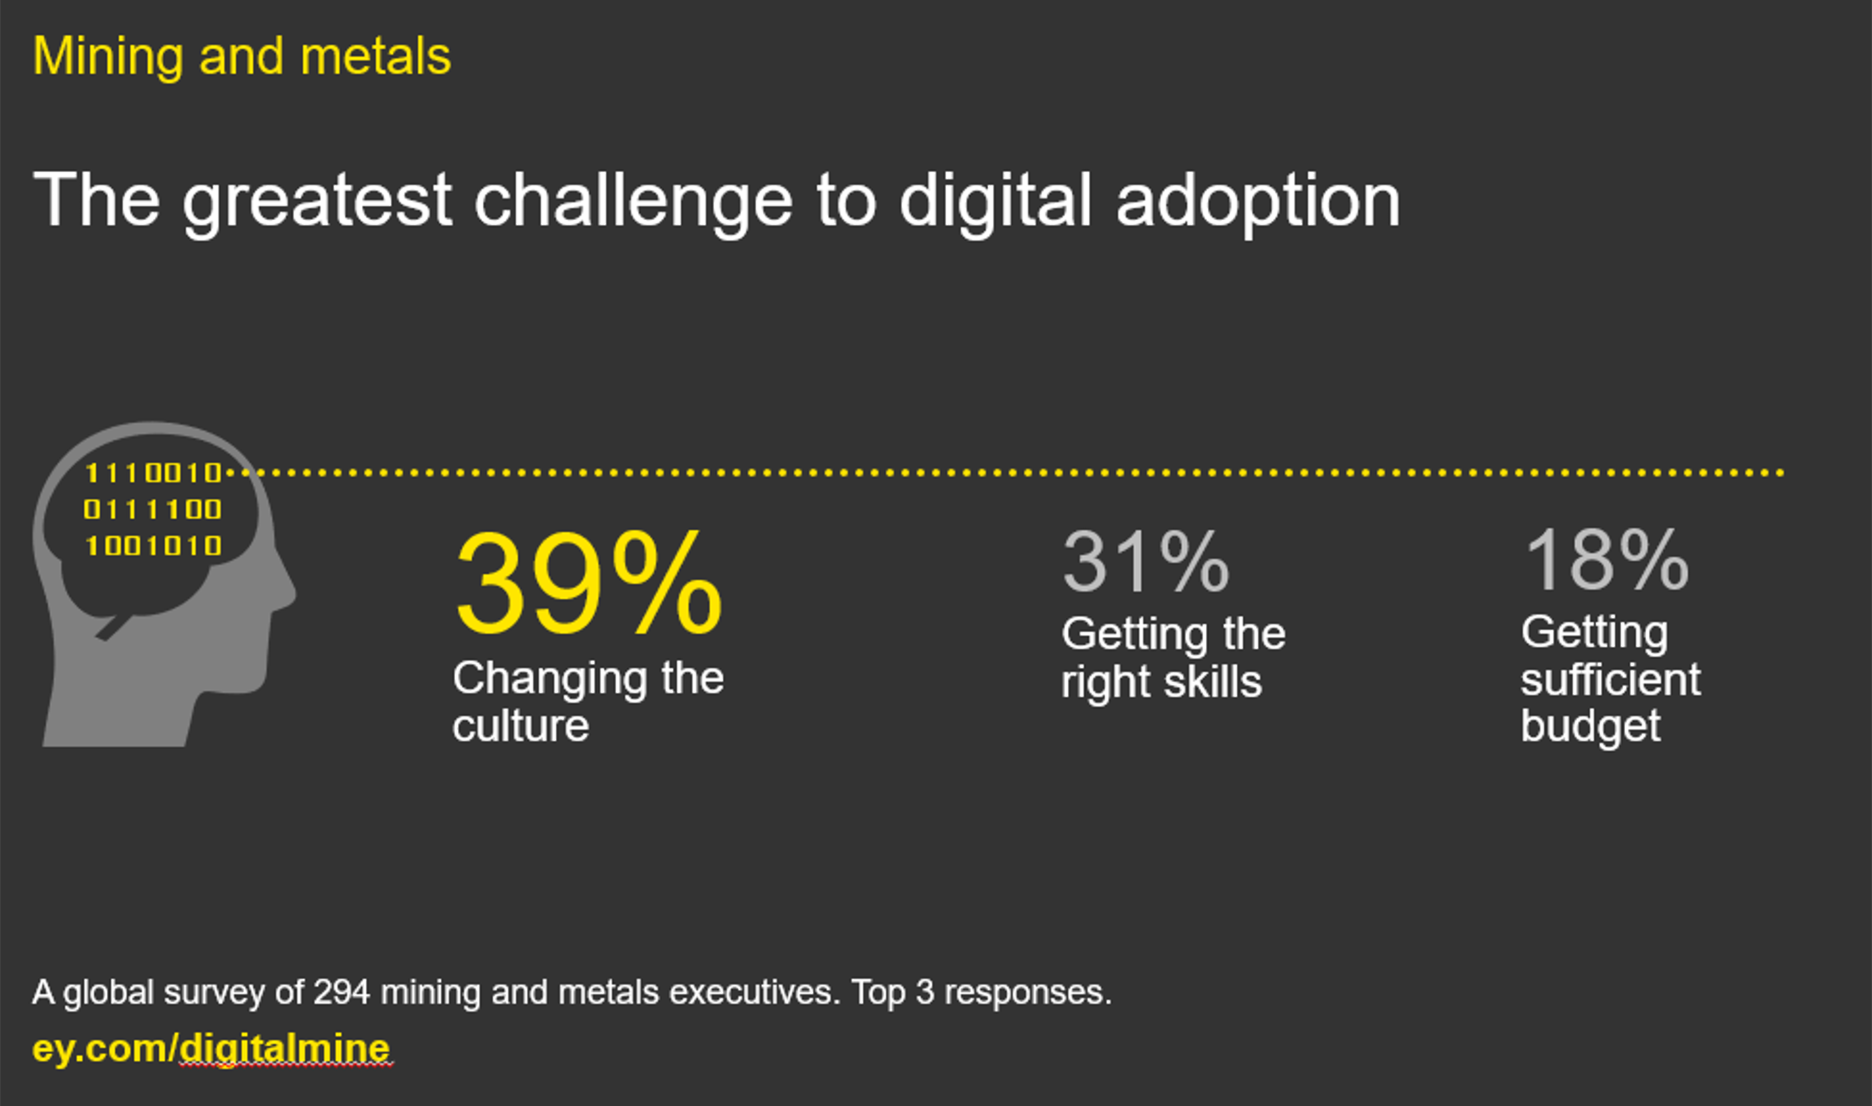 EY - The greatest challenge to digital adoption